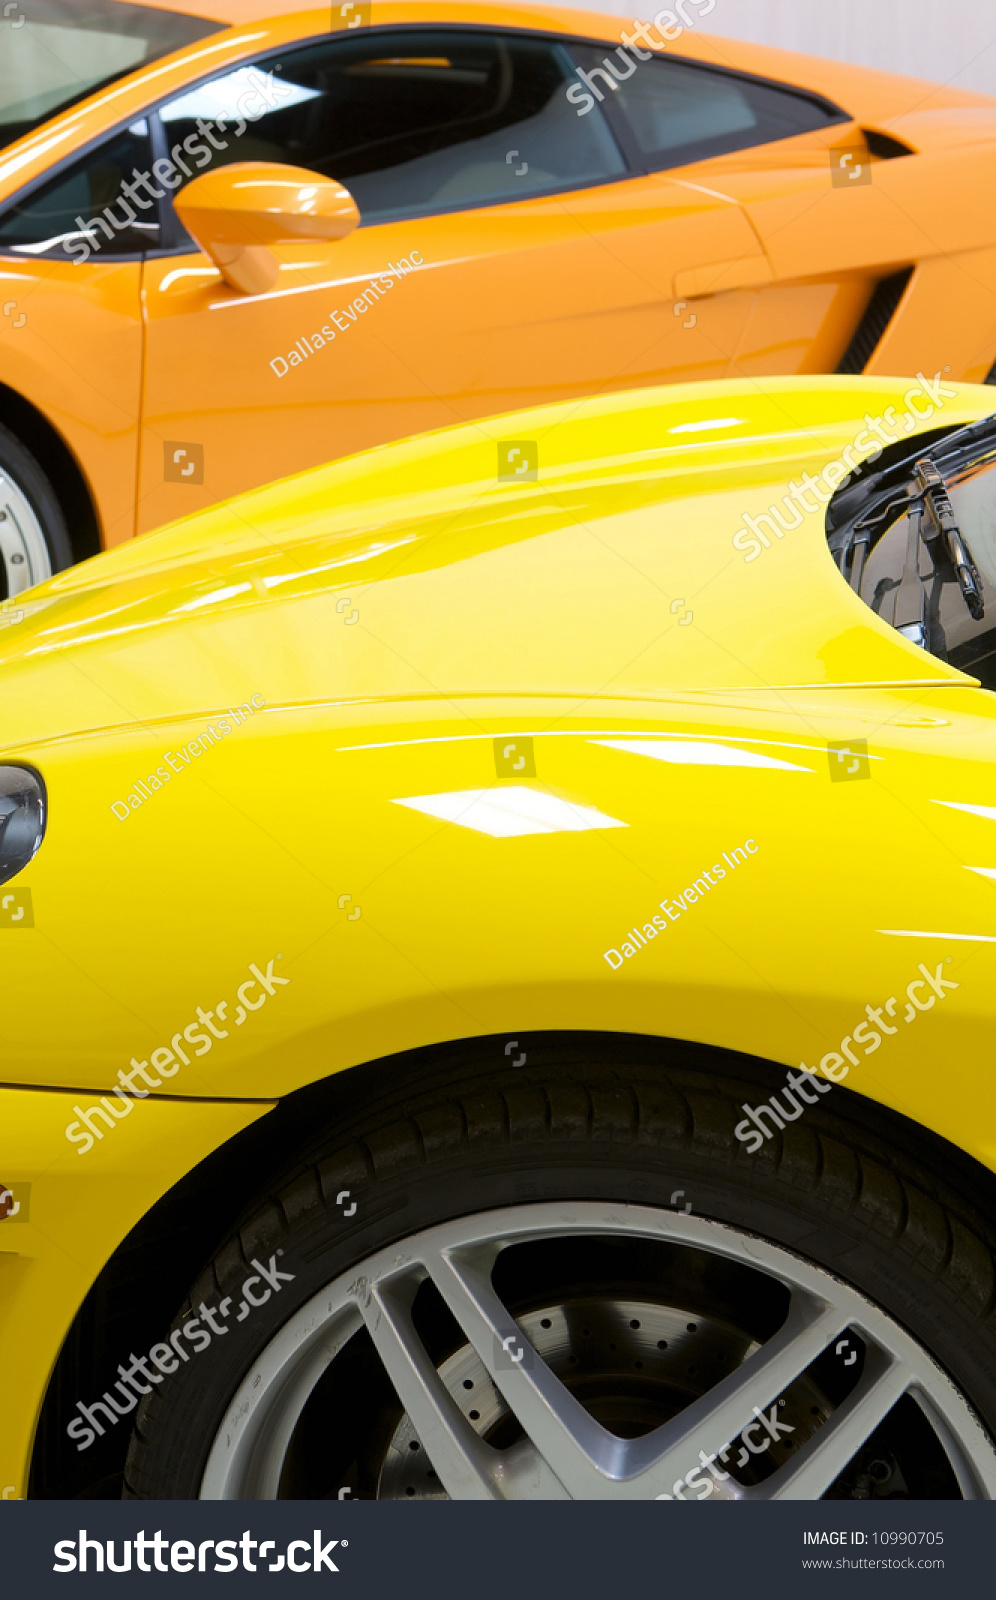 An Image Of A Italian Sports Cars In Yellow And Orange